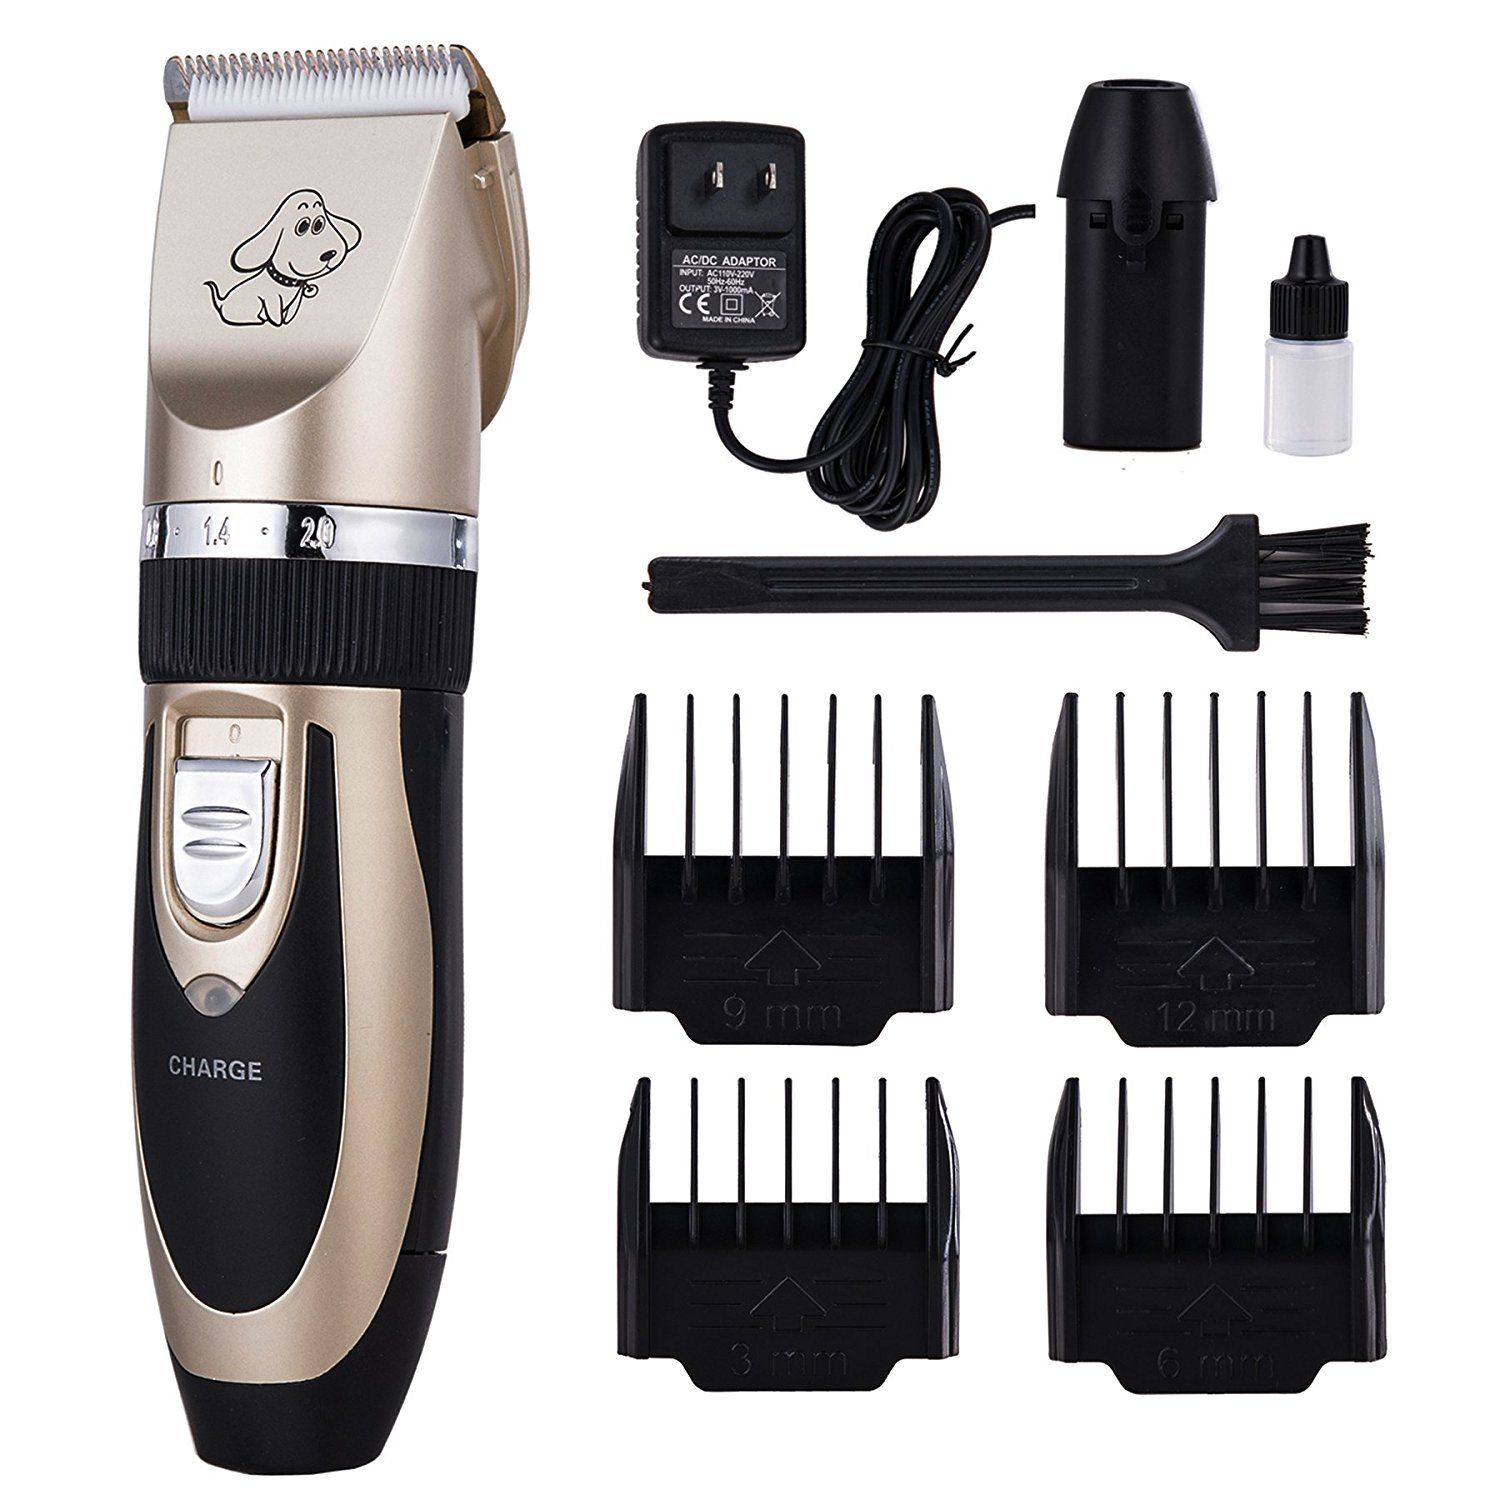 Pin on Top 7 Best Dog Clippers Reviews in 2018